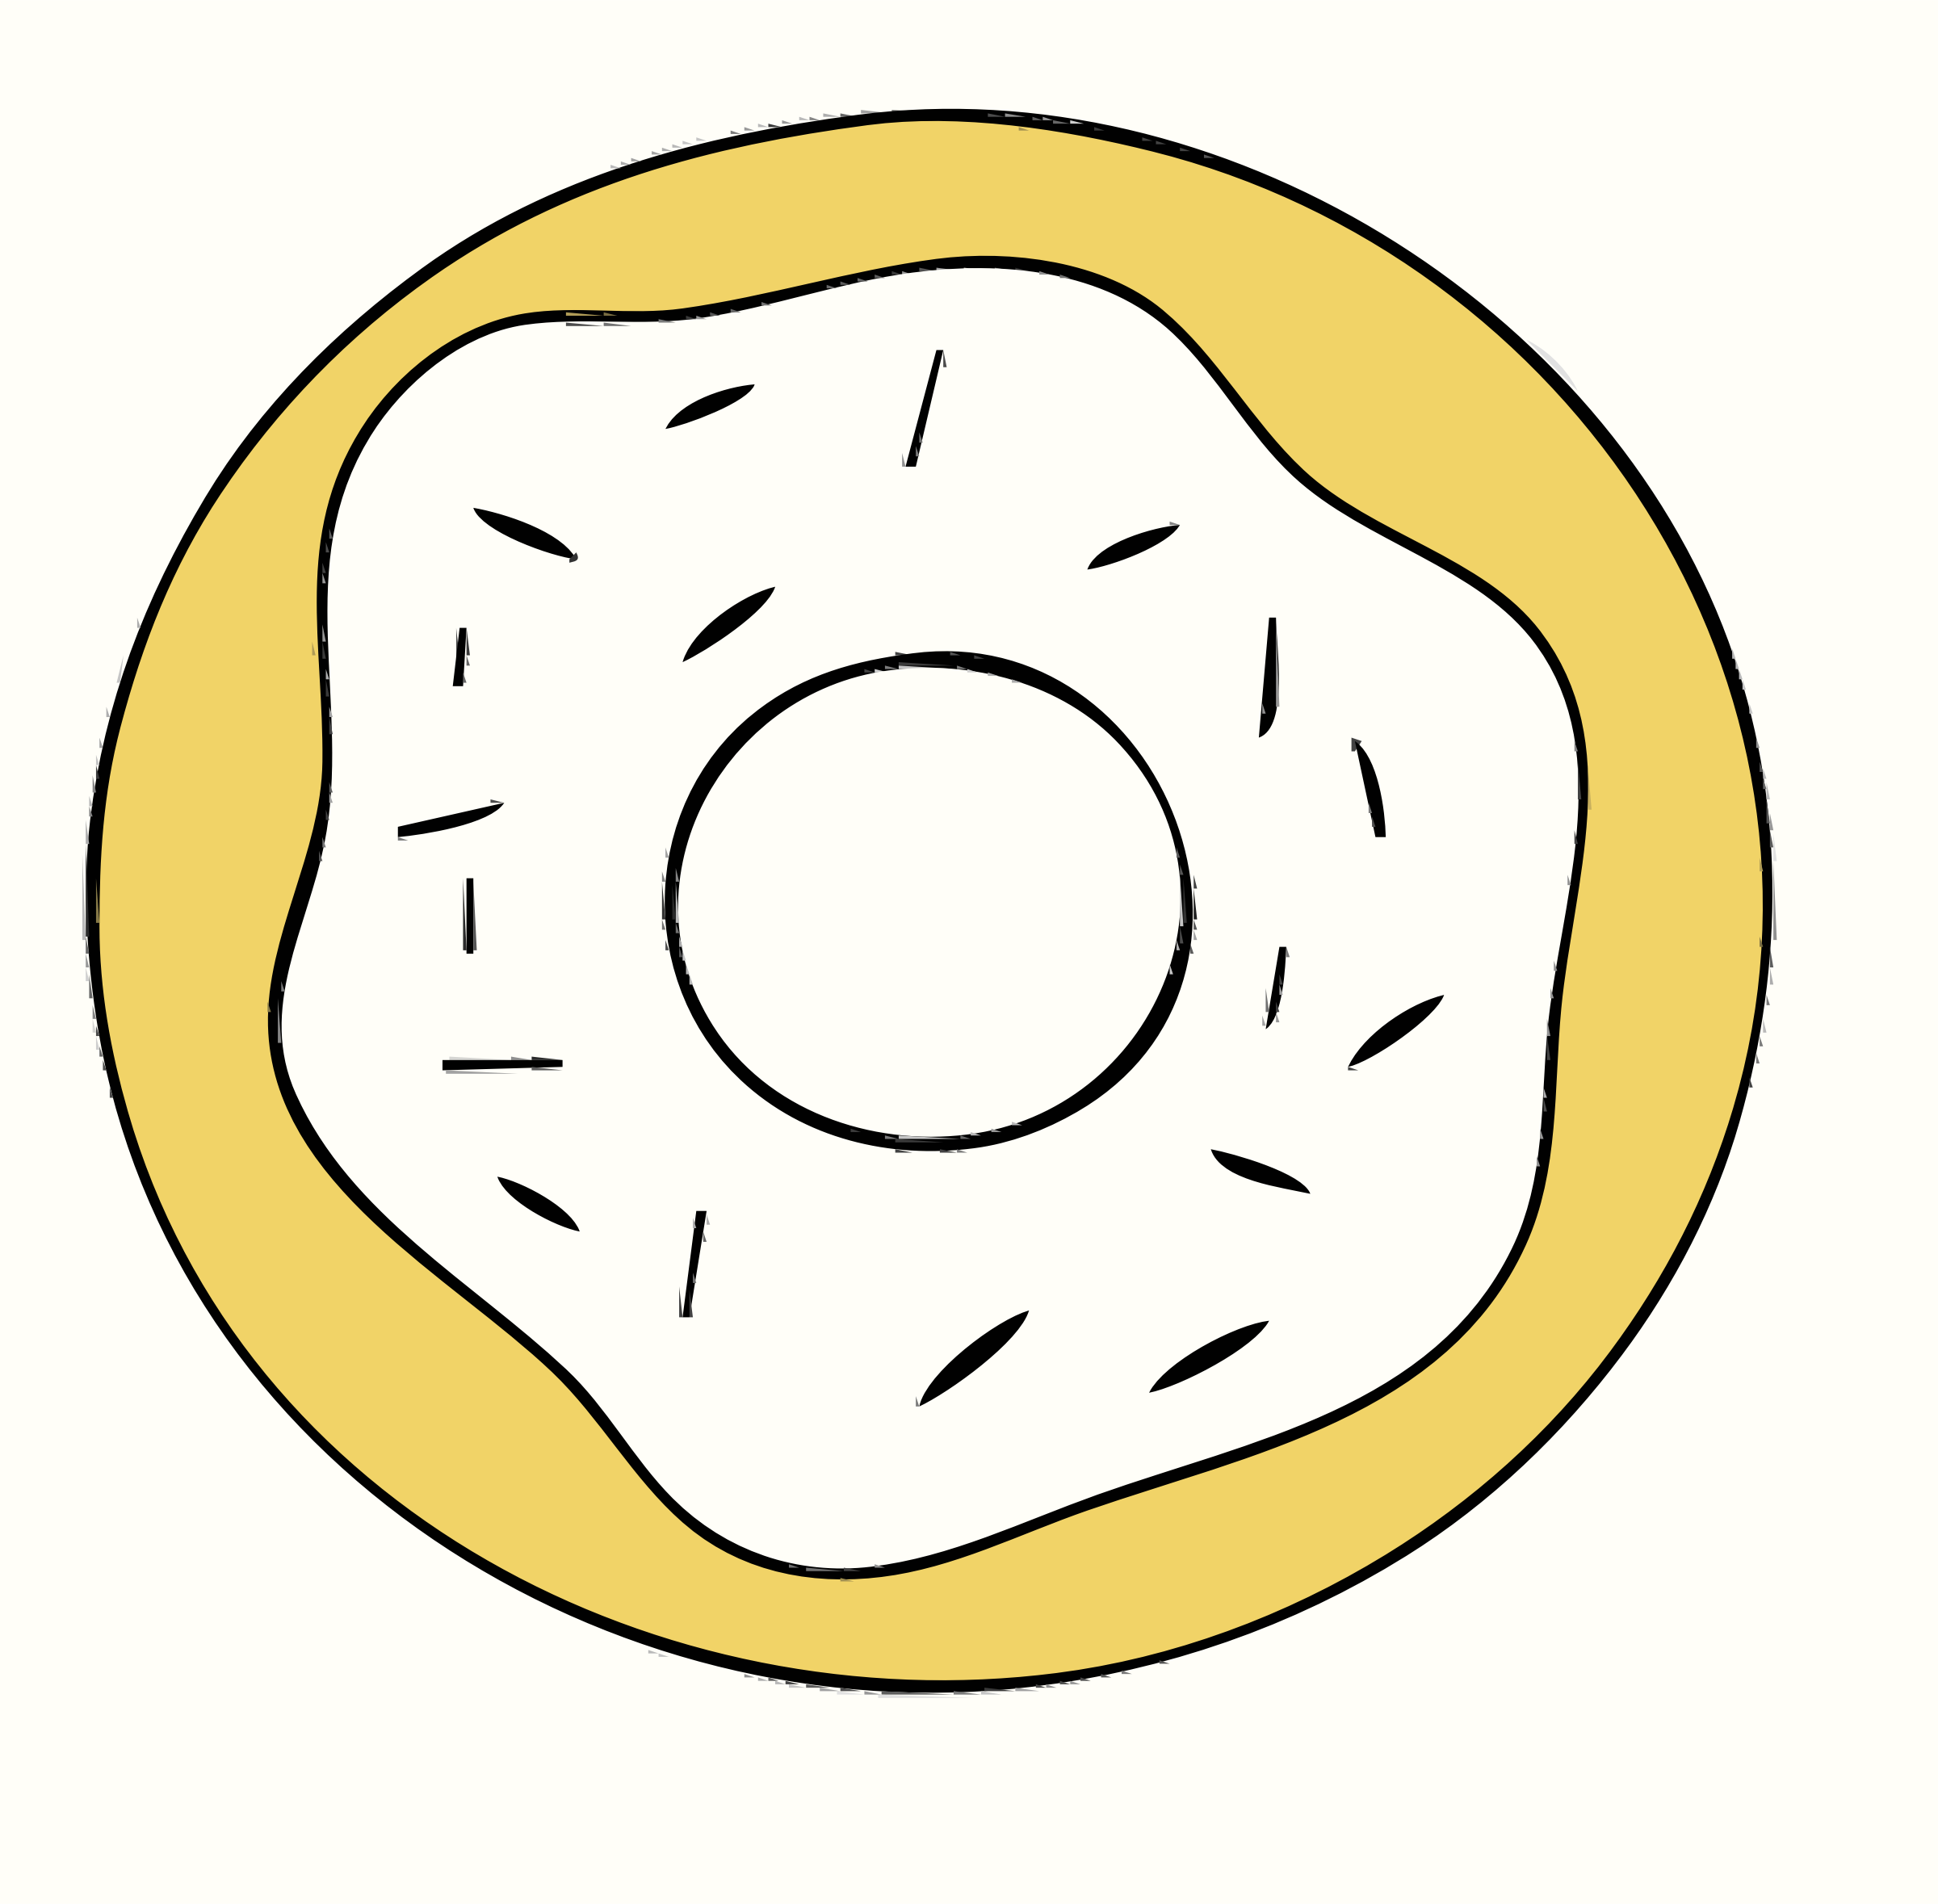 do you like doughnuts? 6 by cnestory